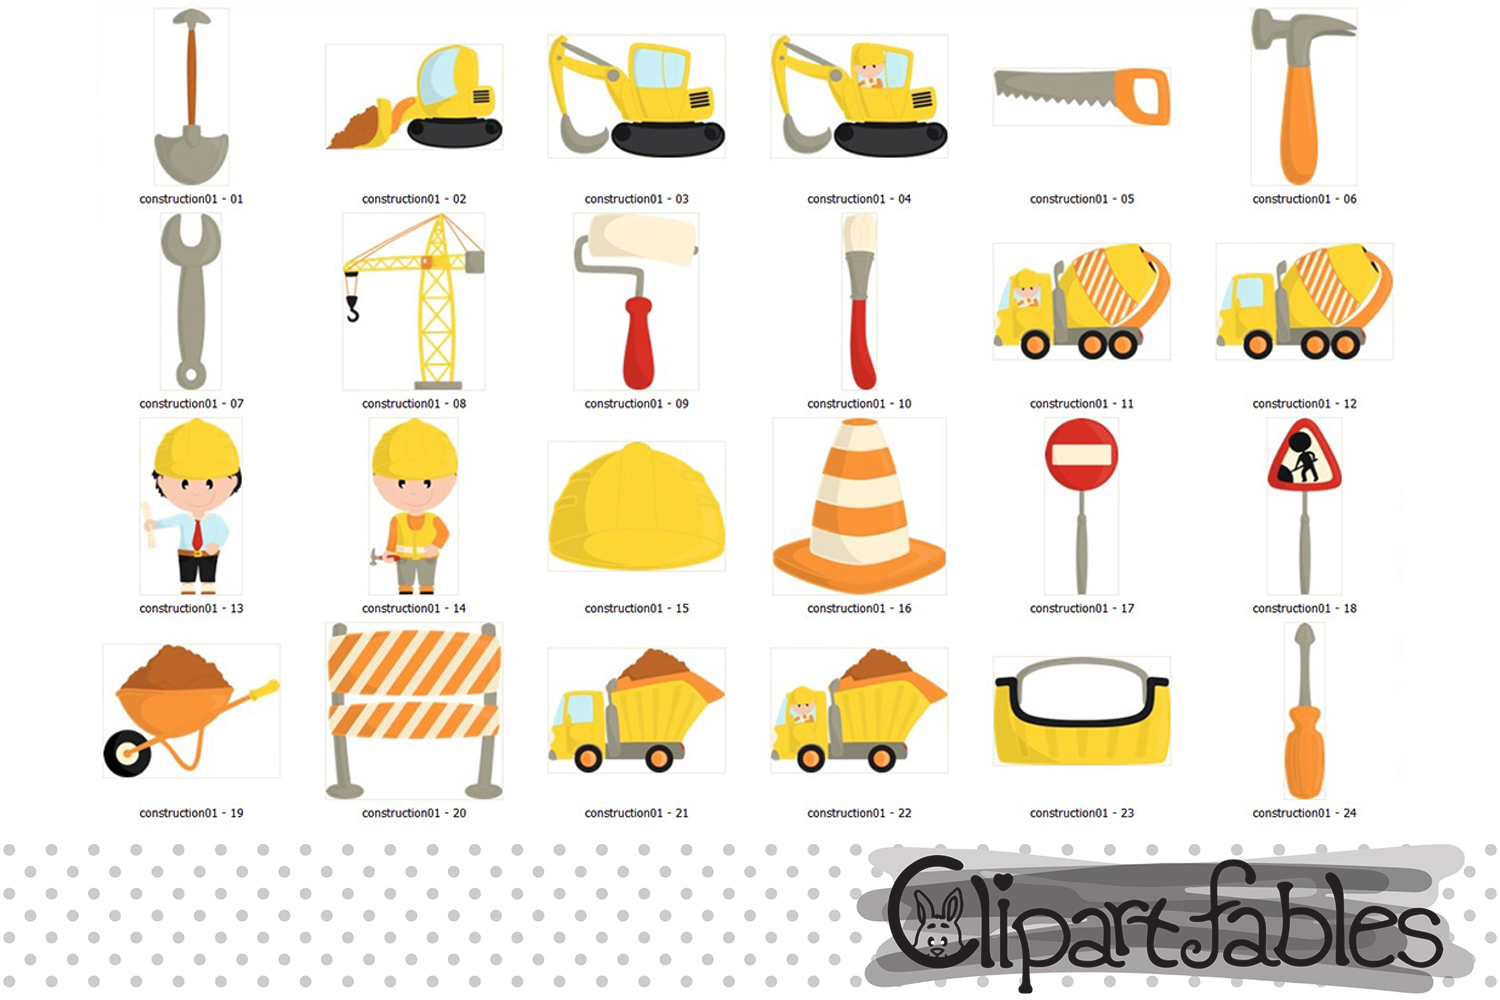 Under Construction clipart, Cute truck art- INSTANT download example image 2